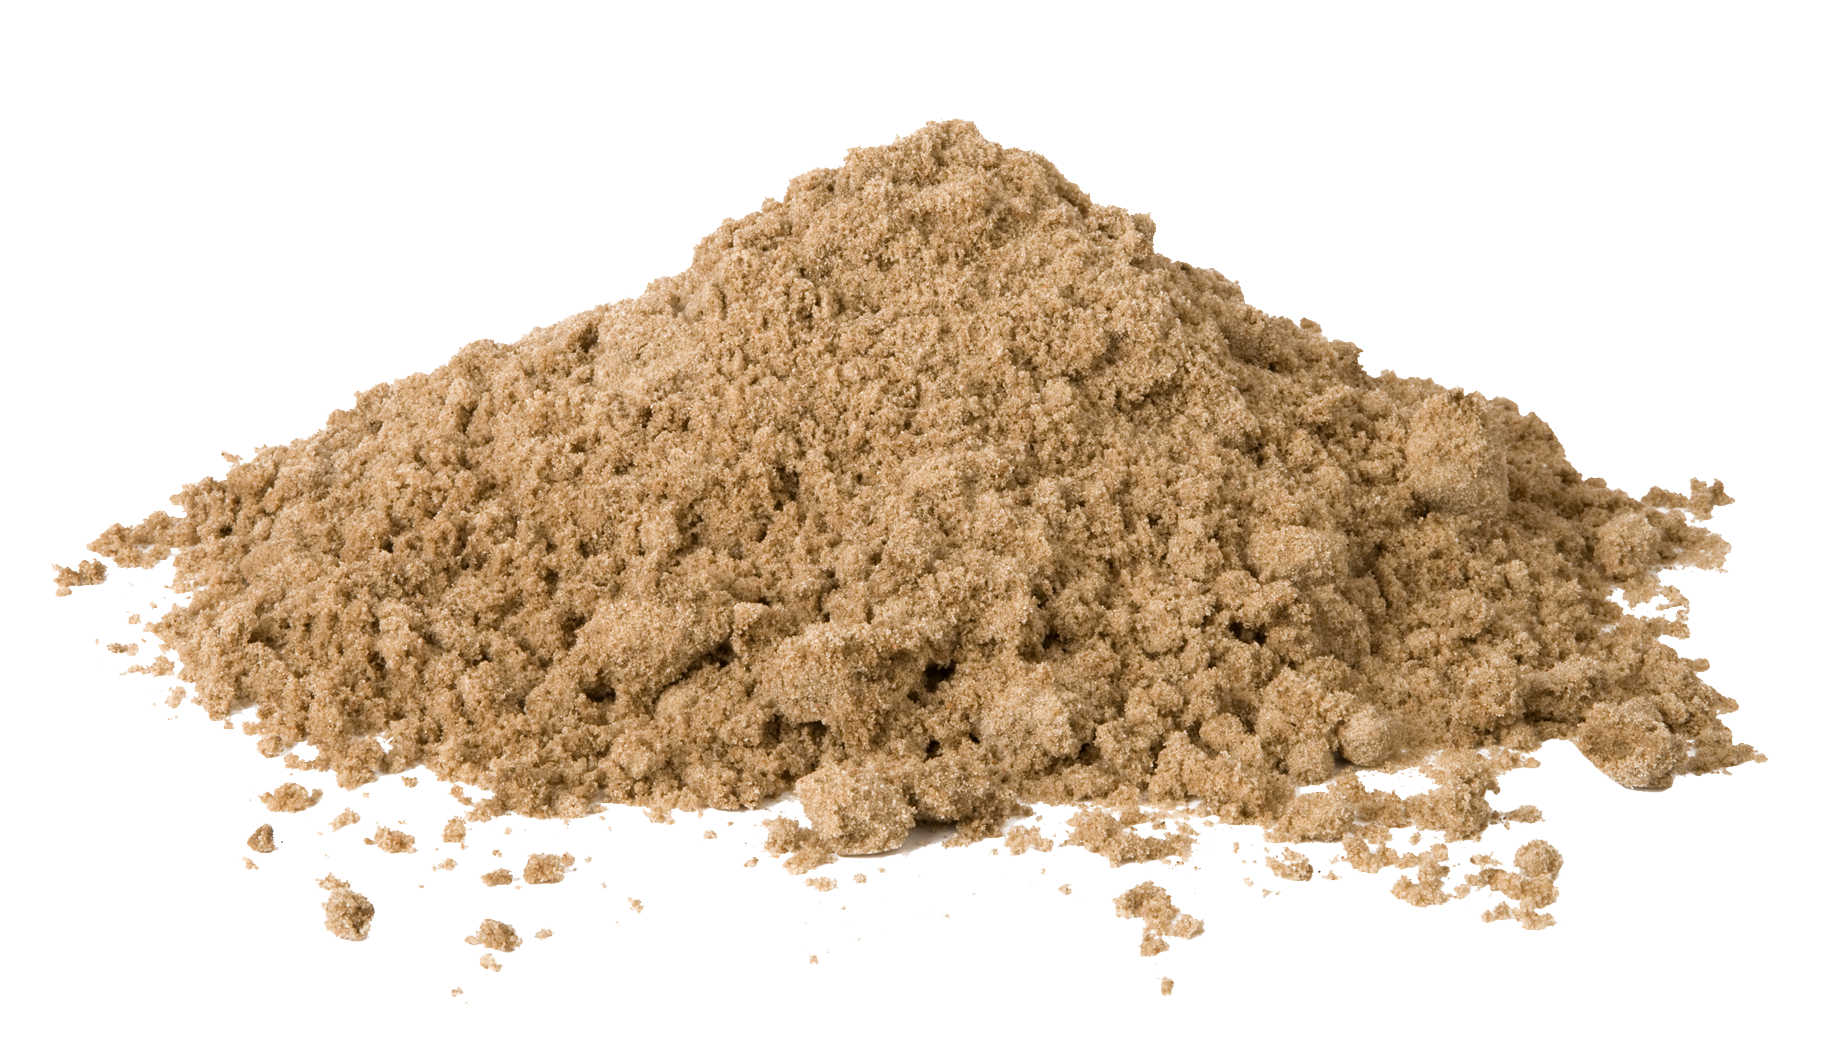 Sand png. Images transparent free download